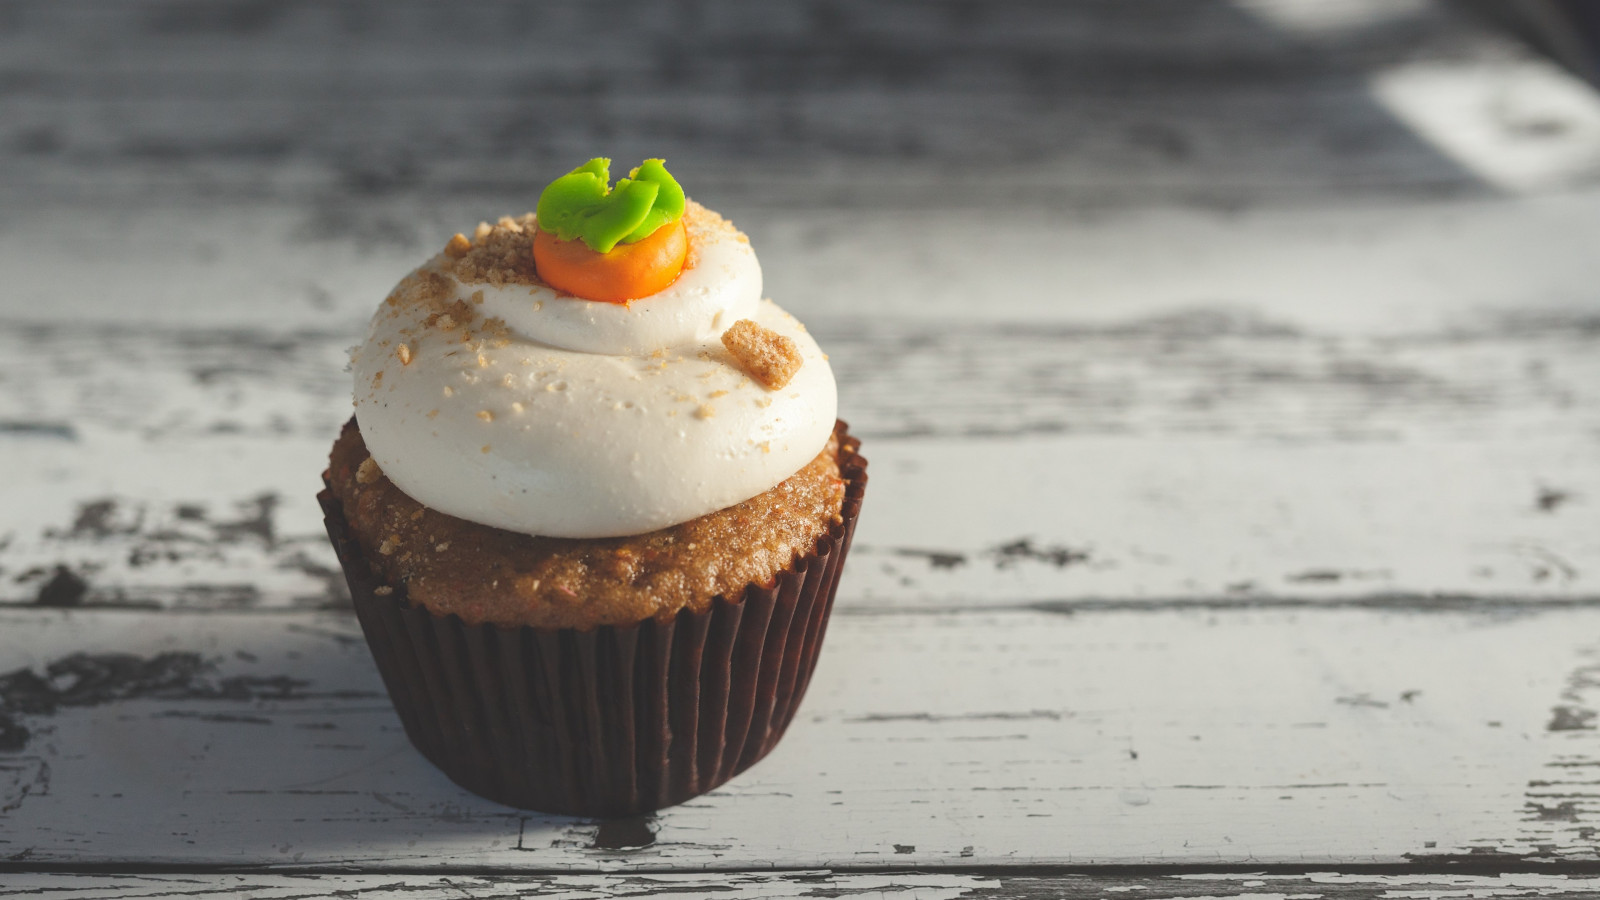 Muffin with cream wallpaper 1600x900